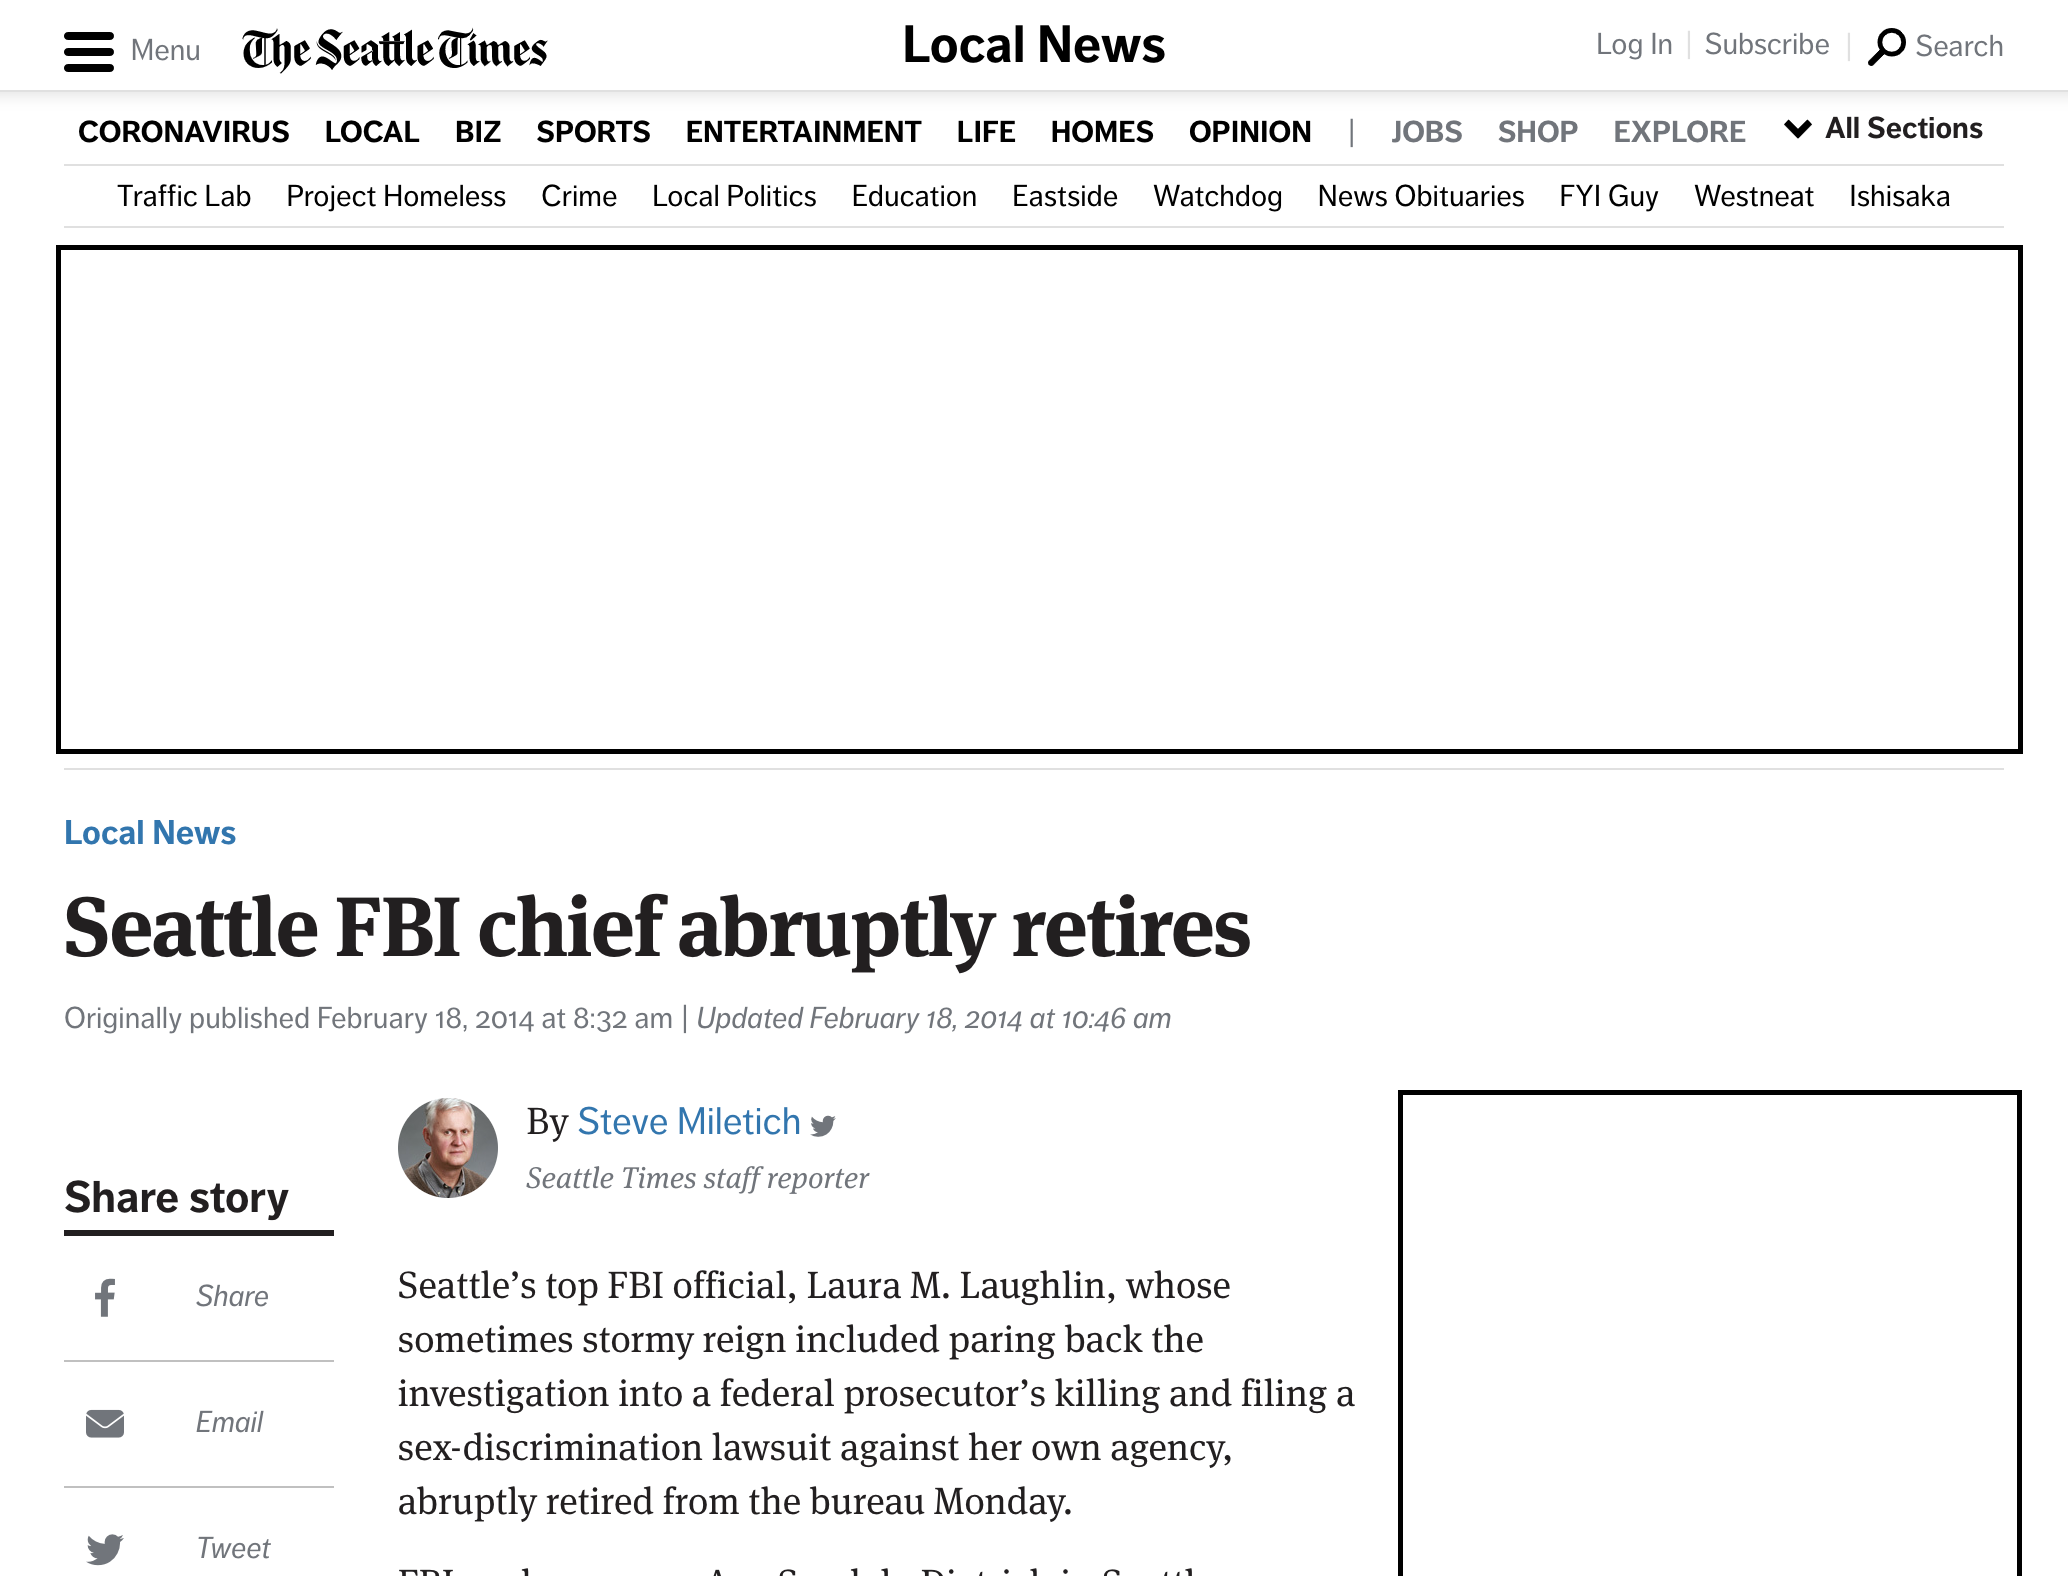 Example of good E-A-T from The Seattle Times